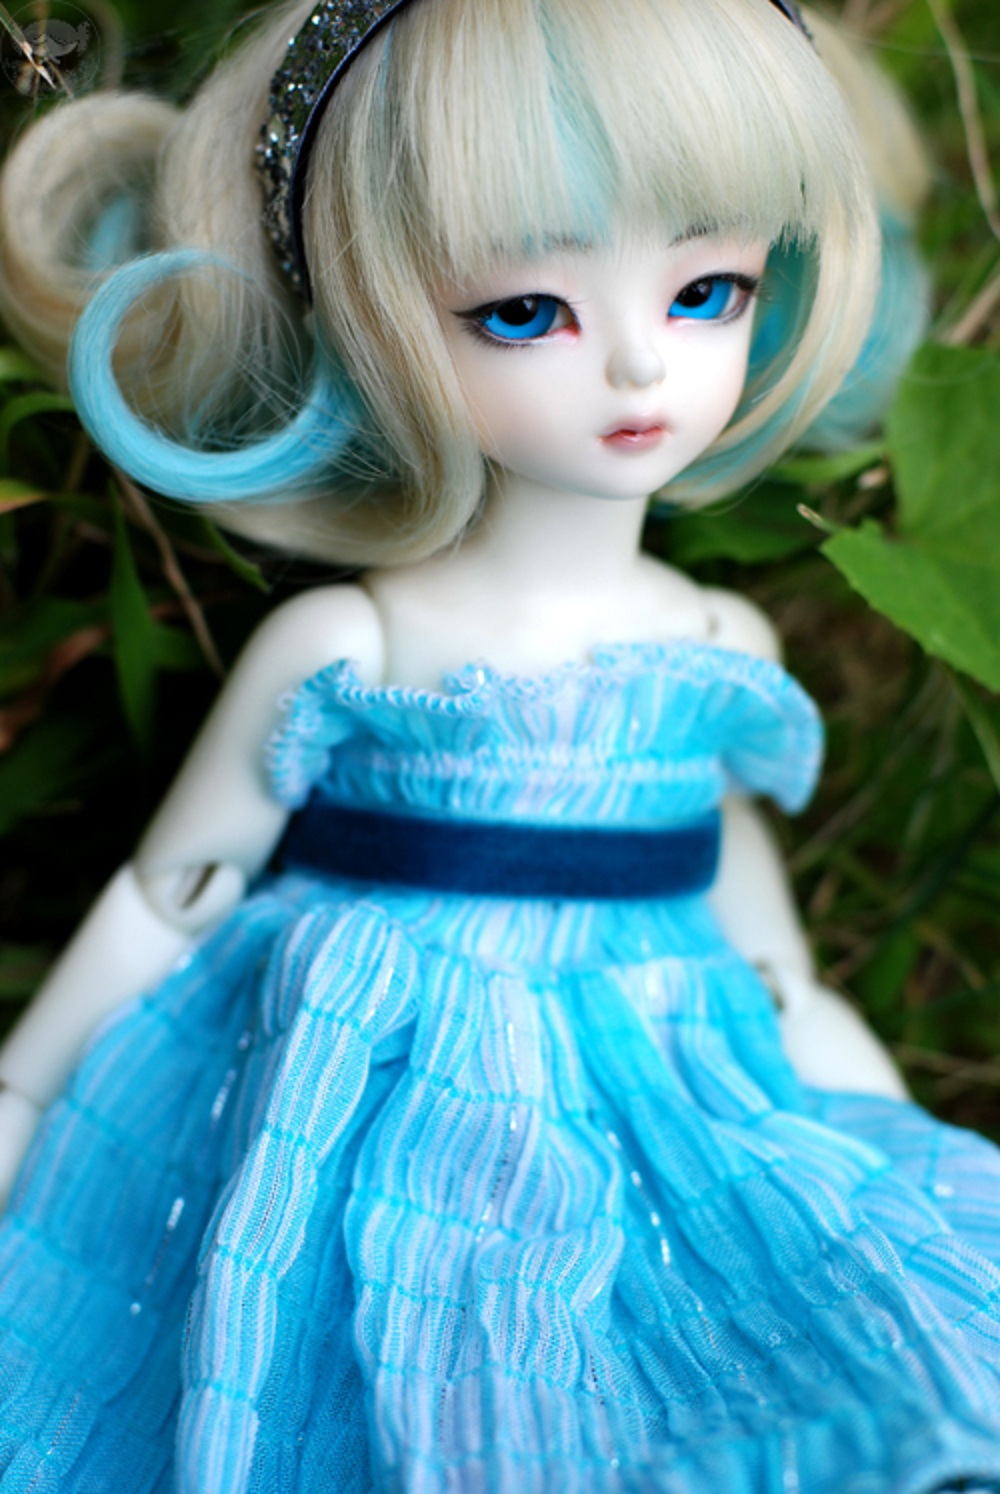 A Cute Young Girl In Casual Clothes On A Natural Blurred: Cute Baby Barbie Doll Wallpaper